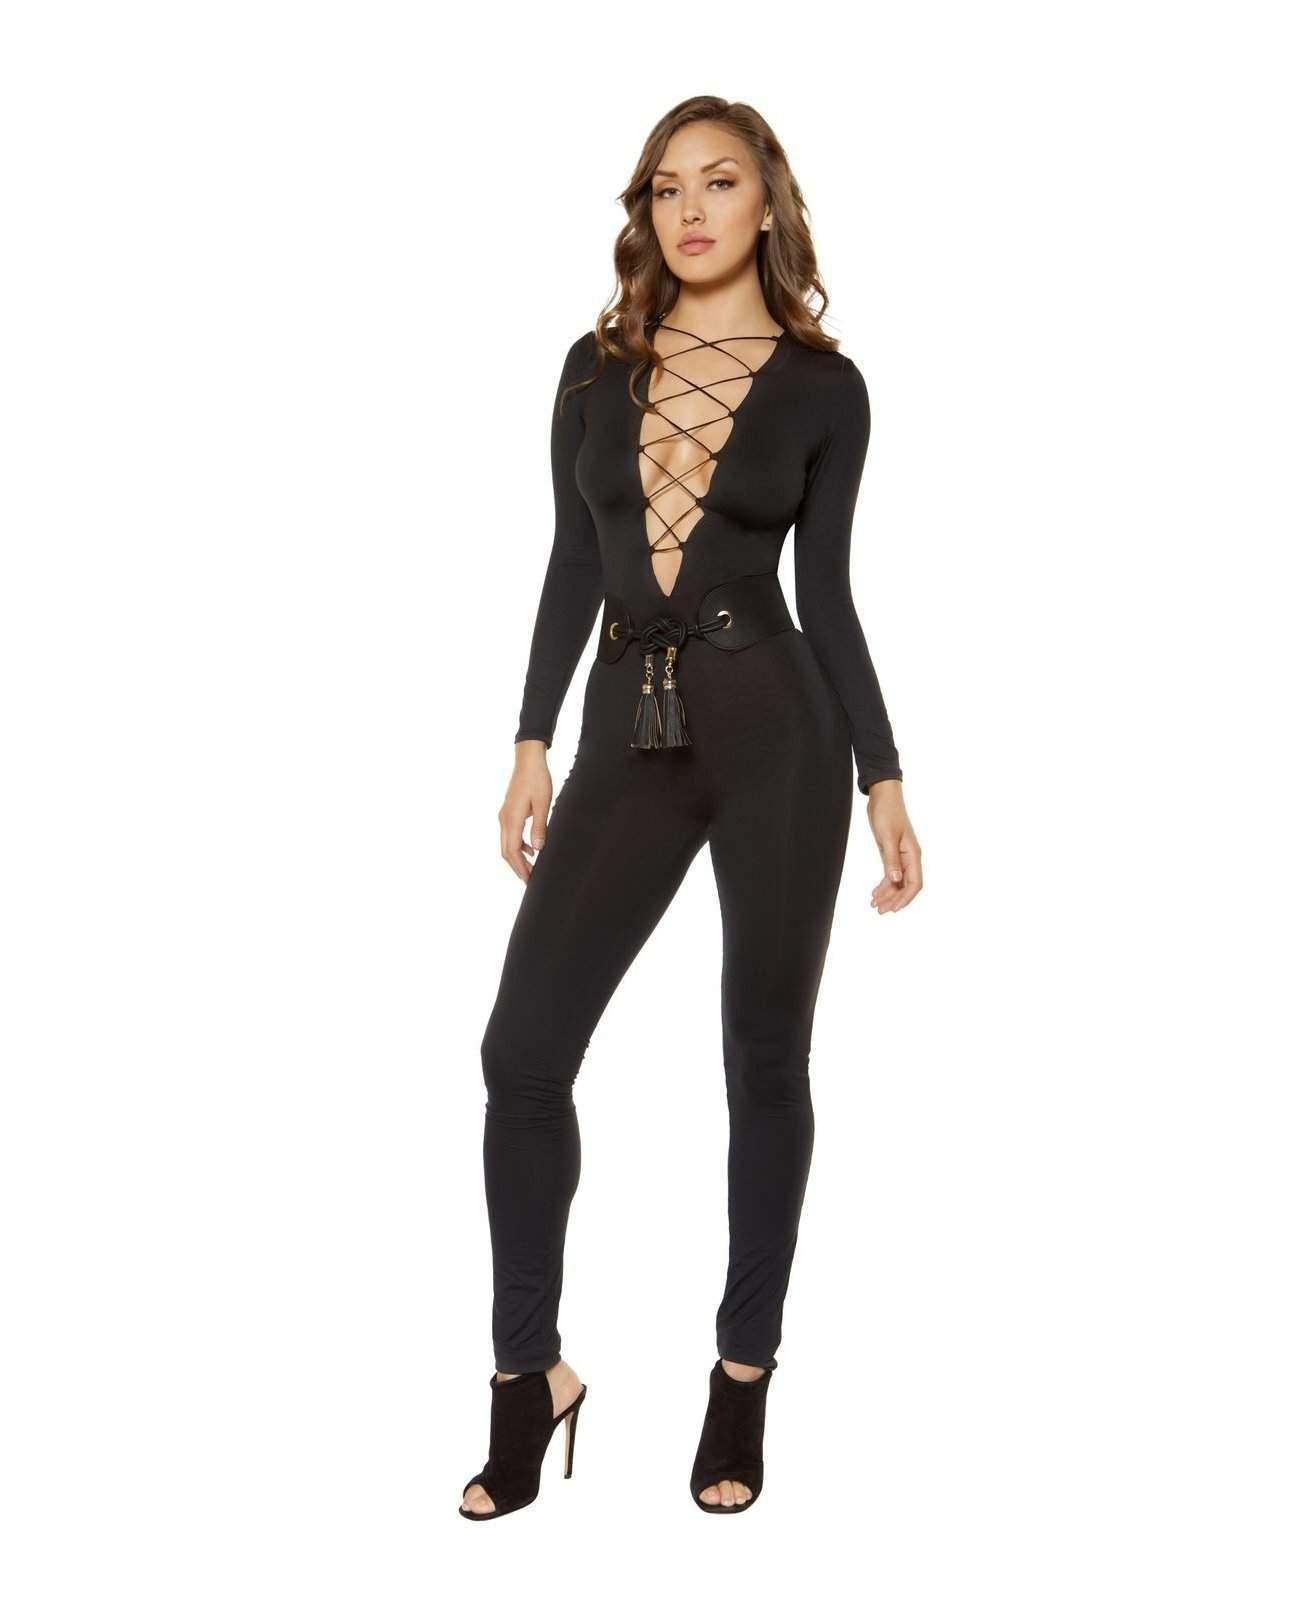 Strappy Lace-up Jumpsuit Rompers Size SmallColor BlackNakees